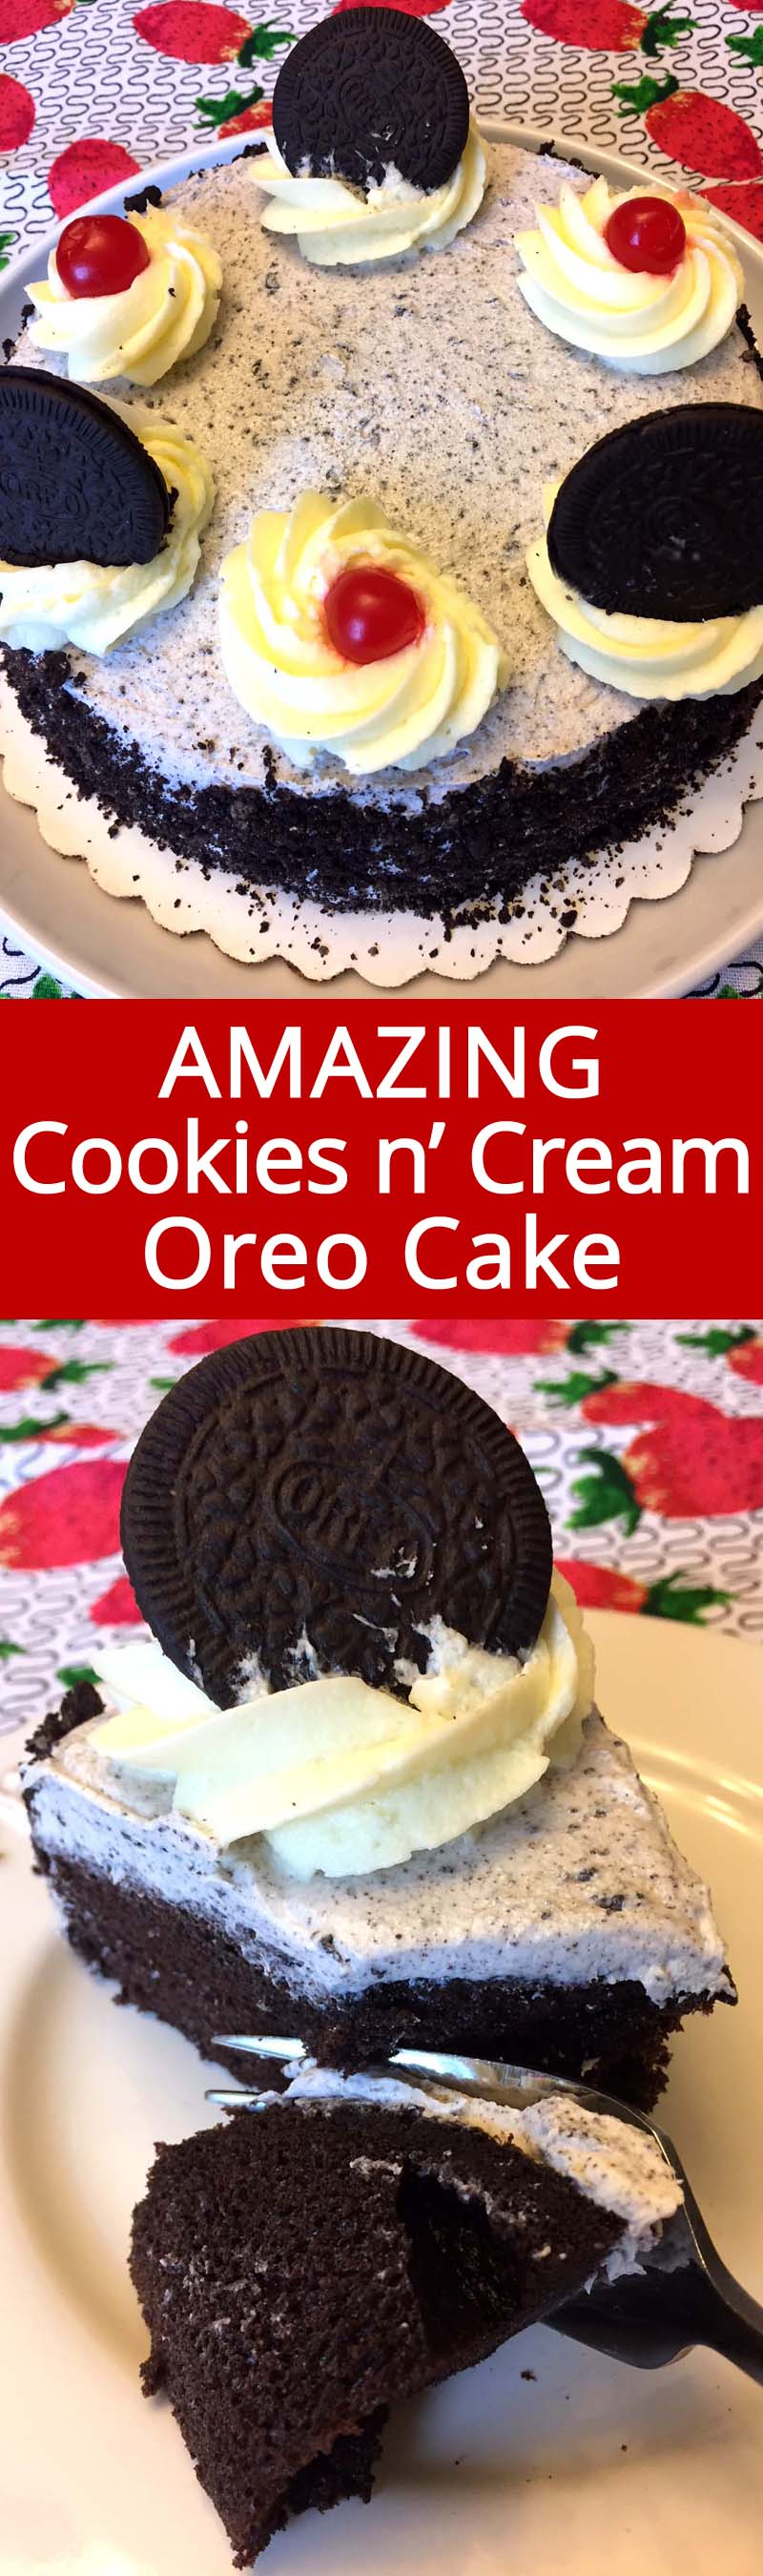 This cookies and cream oreo cake is amazing! I can eat this whole cake at once! So easy to make, this is my go-to cookies n cream cake recipe! #oreo #oreocake #cookiesandcream #cake